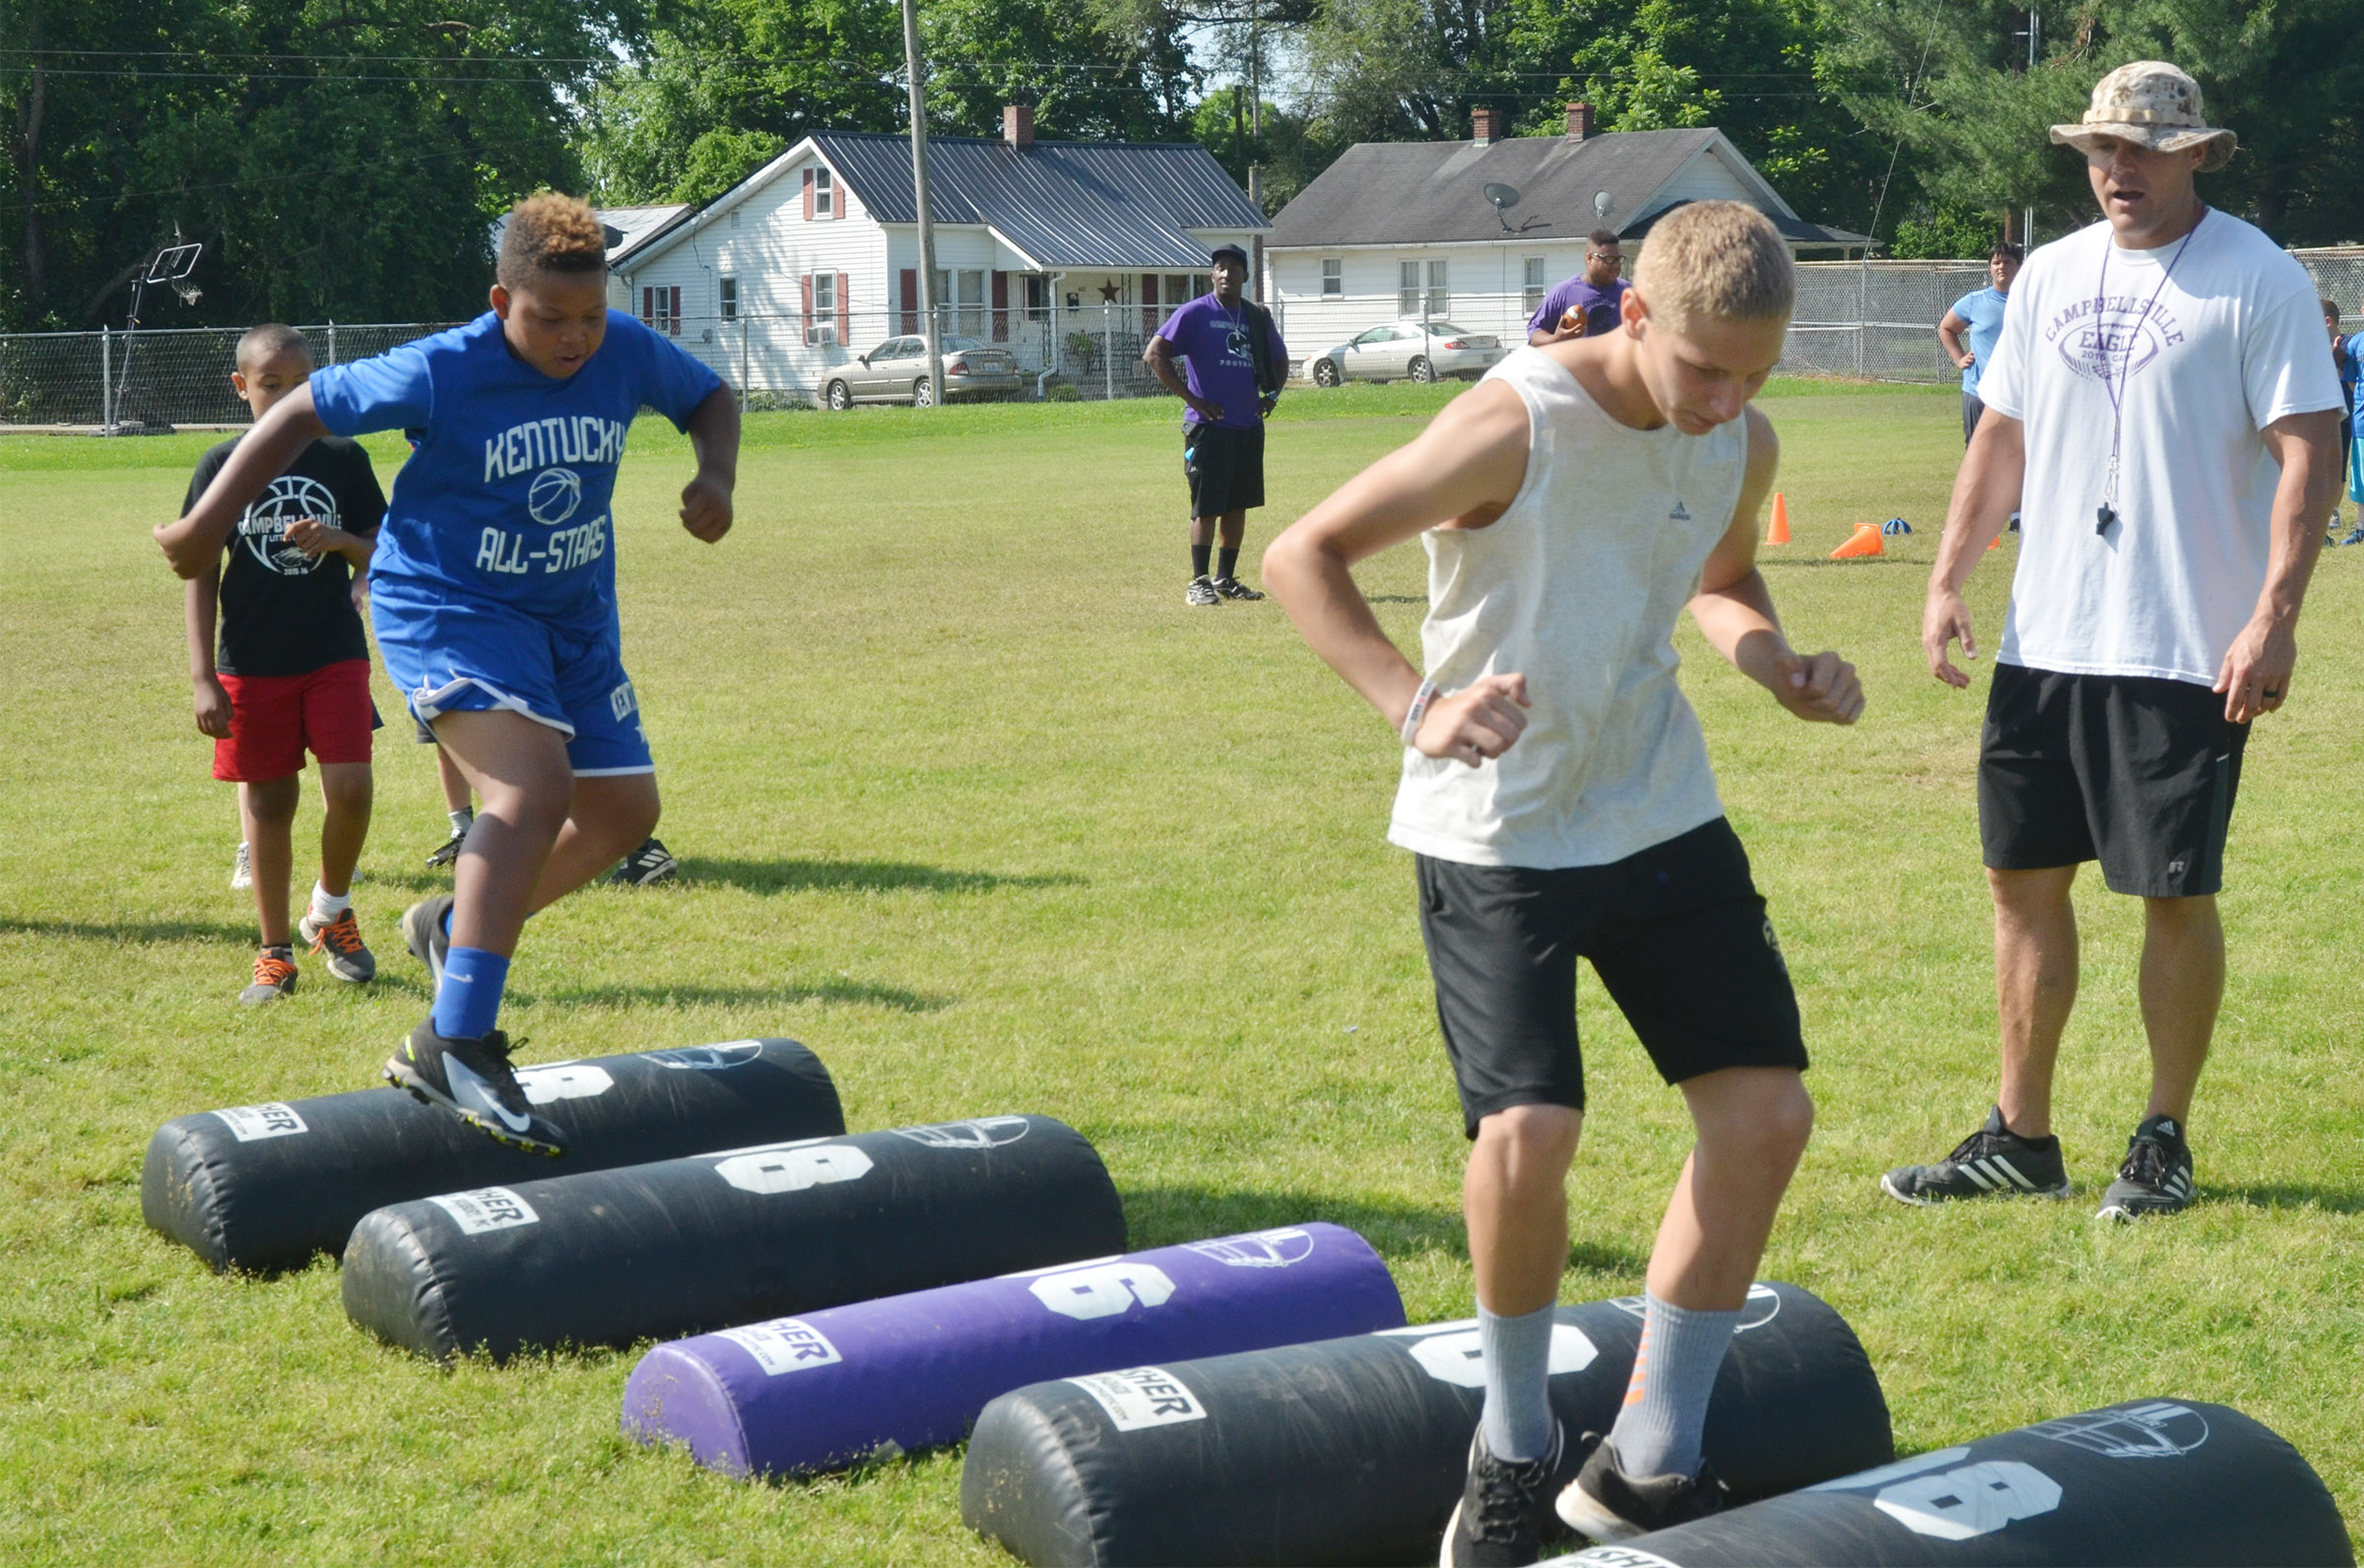 Keondre Weathers, at left, and Damon Johnson work on their footwork with assistant coach Robbie Gribbins.